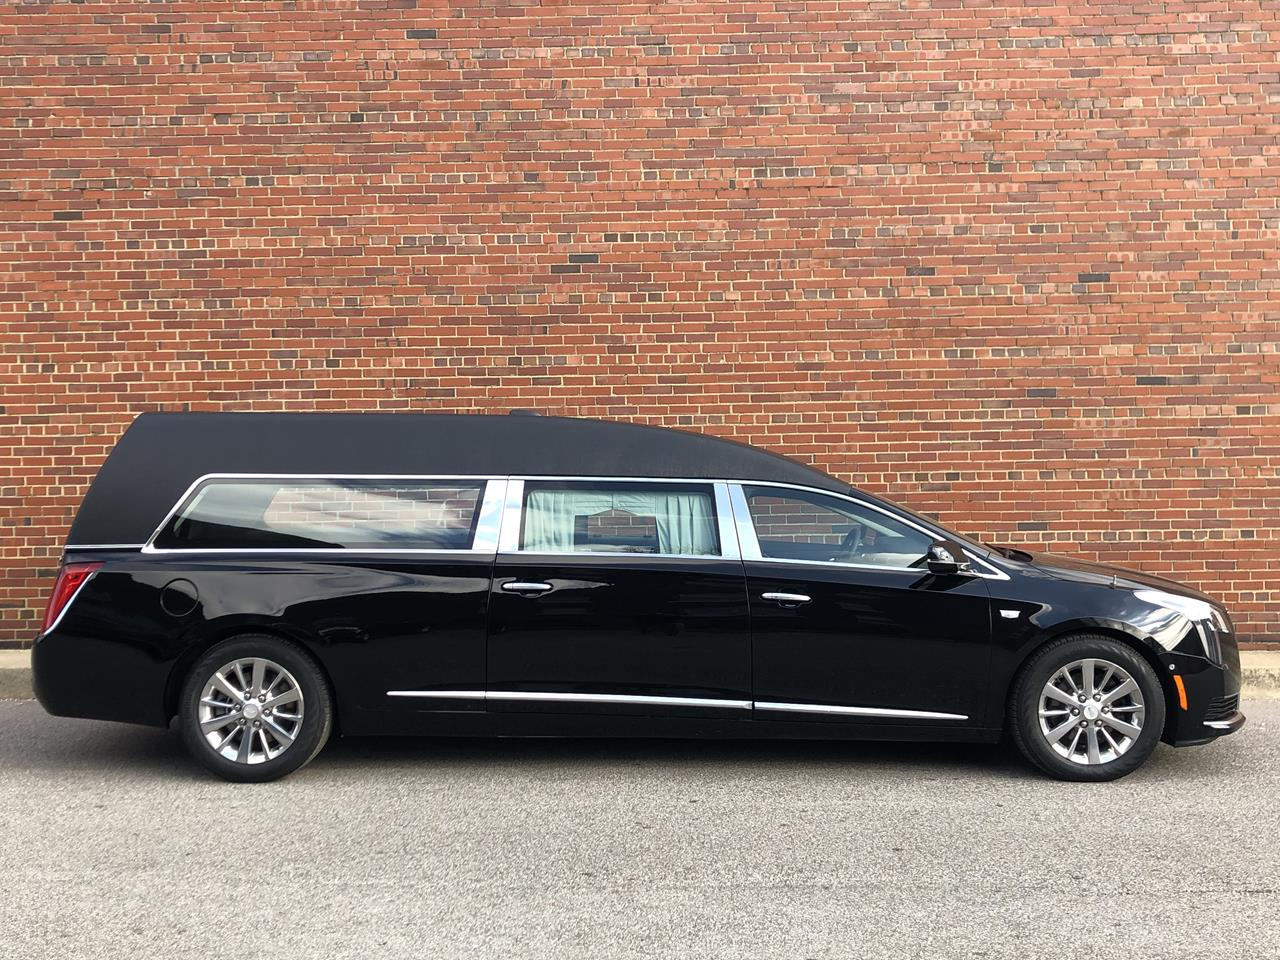 2019 Cadillac Eagle Kensington Hearse